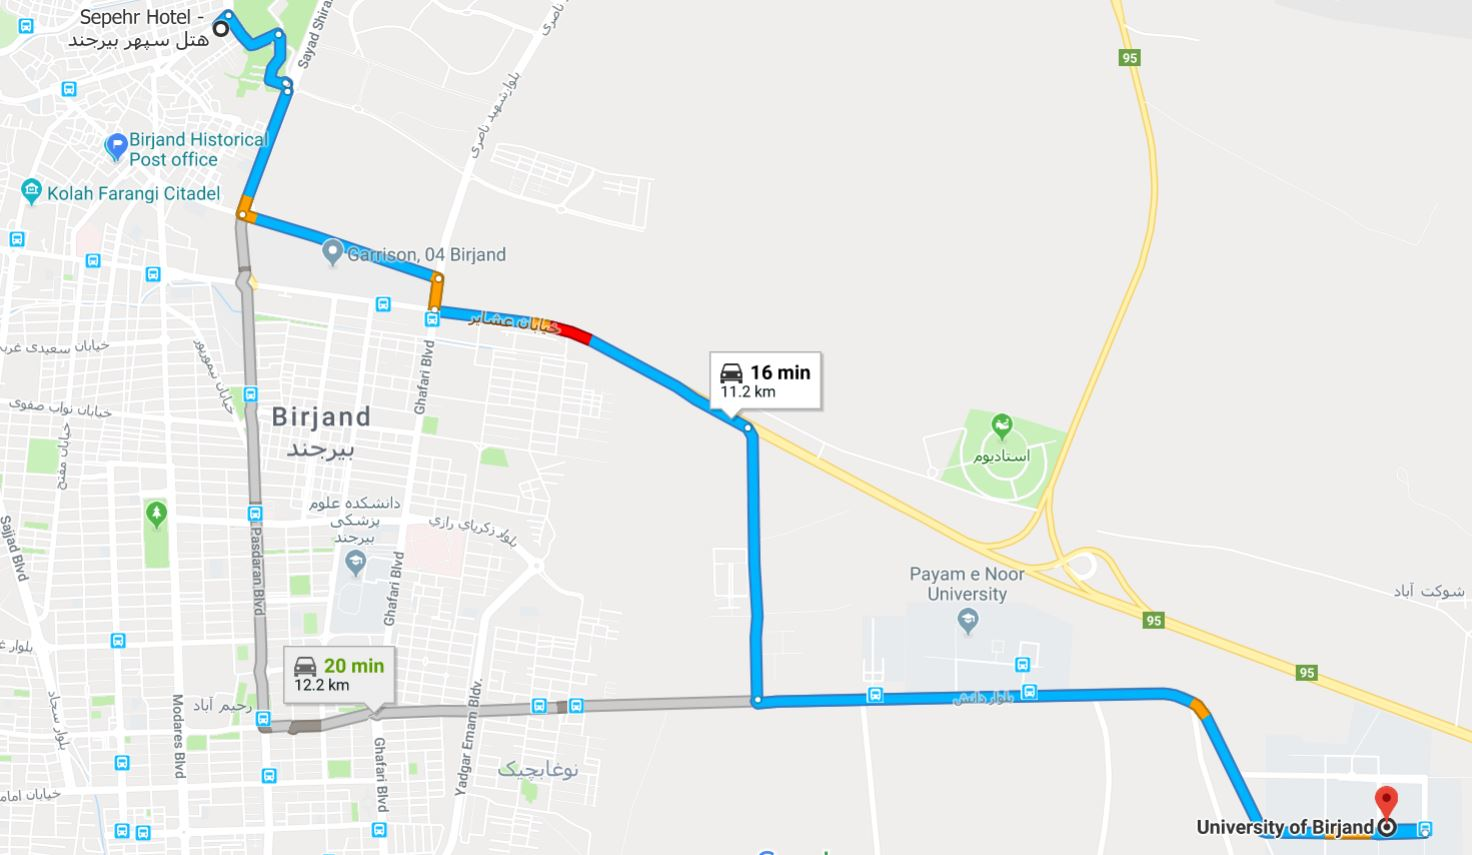 Directions from Sepehr Hotel to University of Birjand